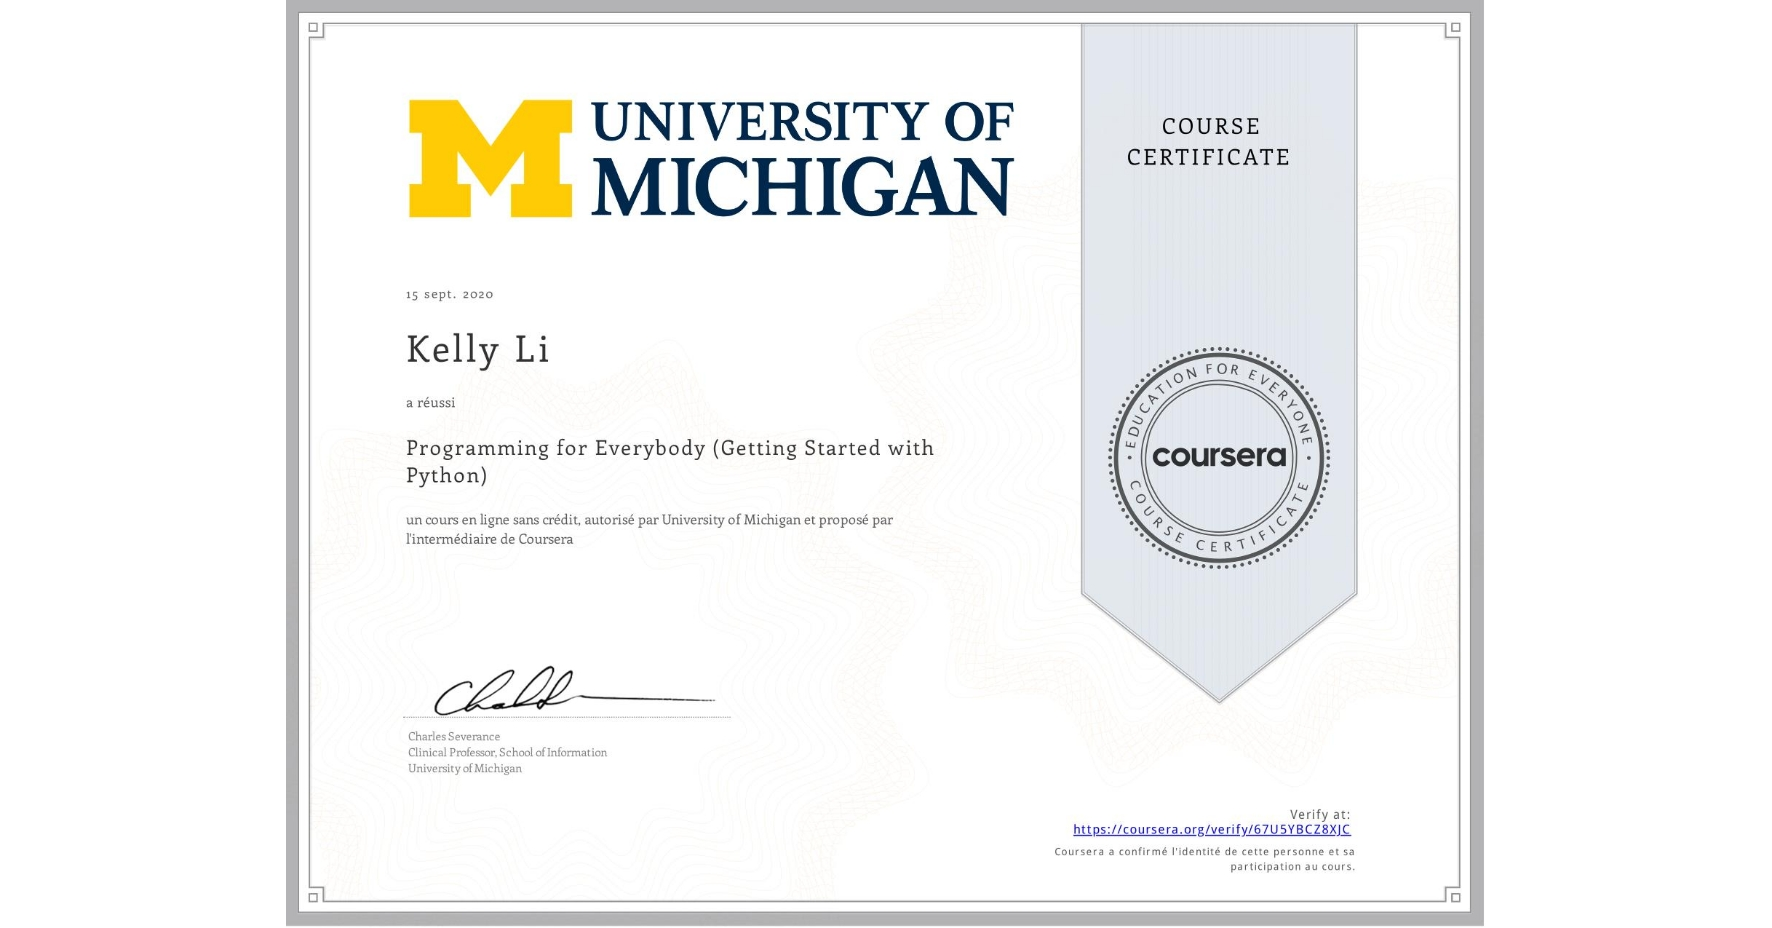 View certificate for Kelly Li, Programming for Everybody (Getting Started with Python), an online non-credit course authorized by University of Michigan and offered through Coursera